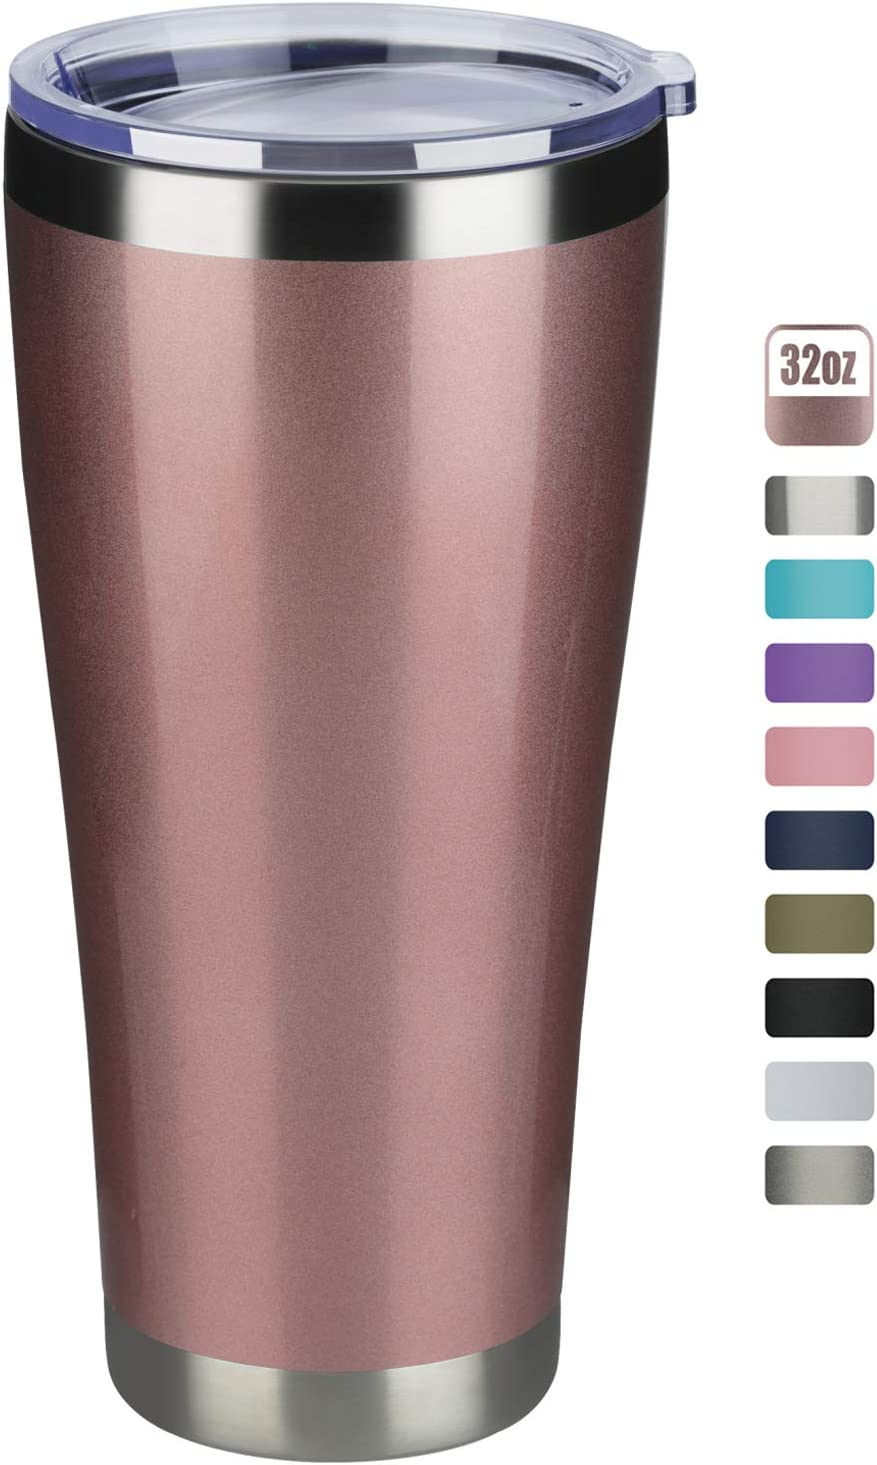 MEWAY 32oz Tumbler Double Wall Vacuum Insulated Travel Mug, Stainless Steel Coffee Tumbler with Lid, Durable Powder Coated Coffee Cup, Keep Drinks Cold & Hot (Rose Gold, 1)